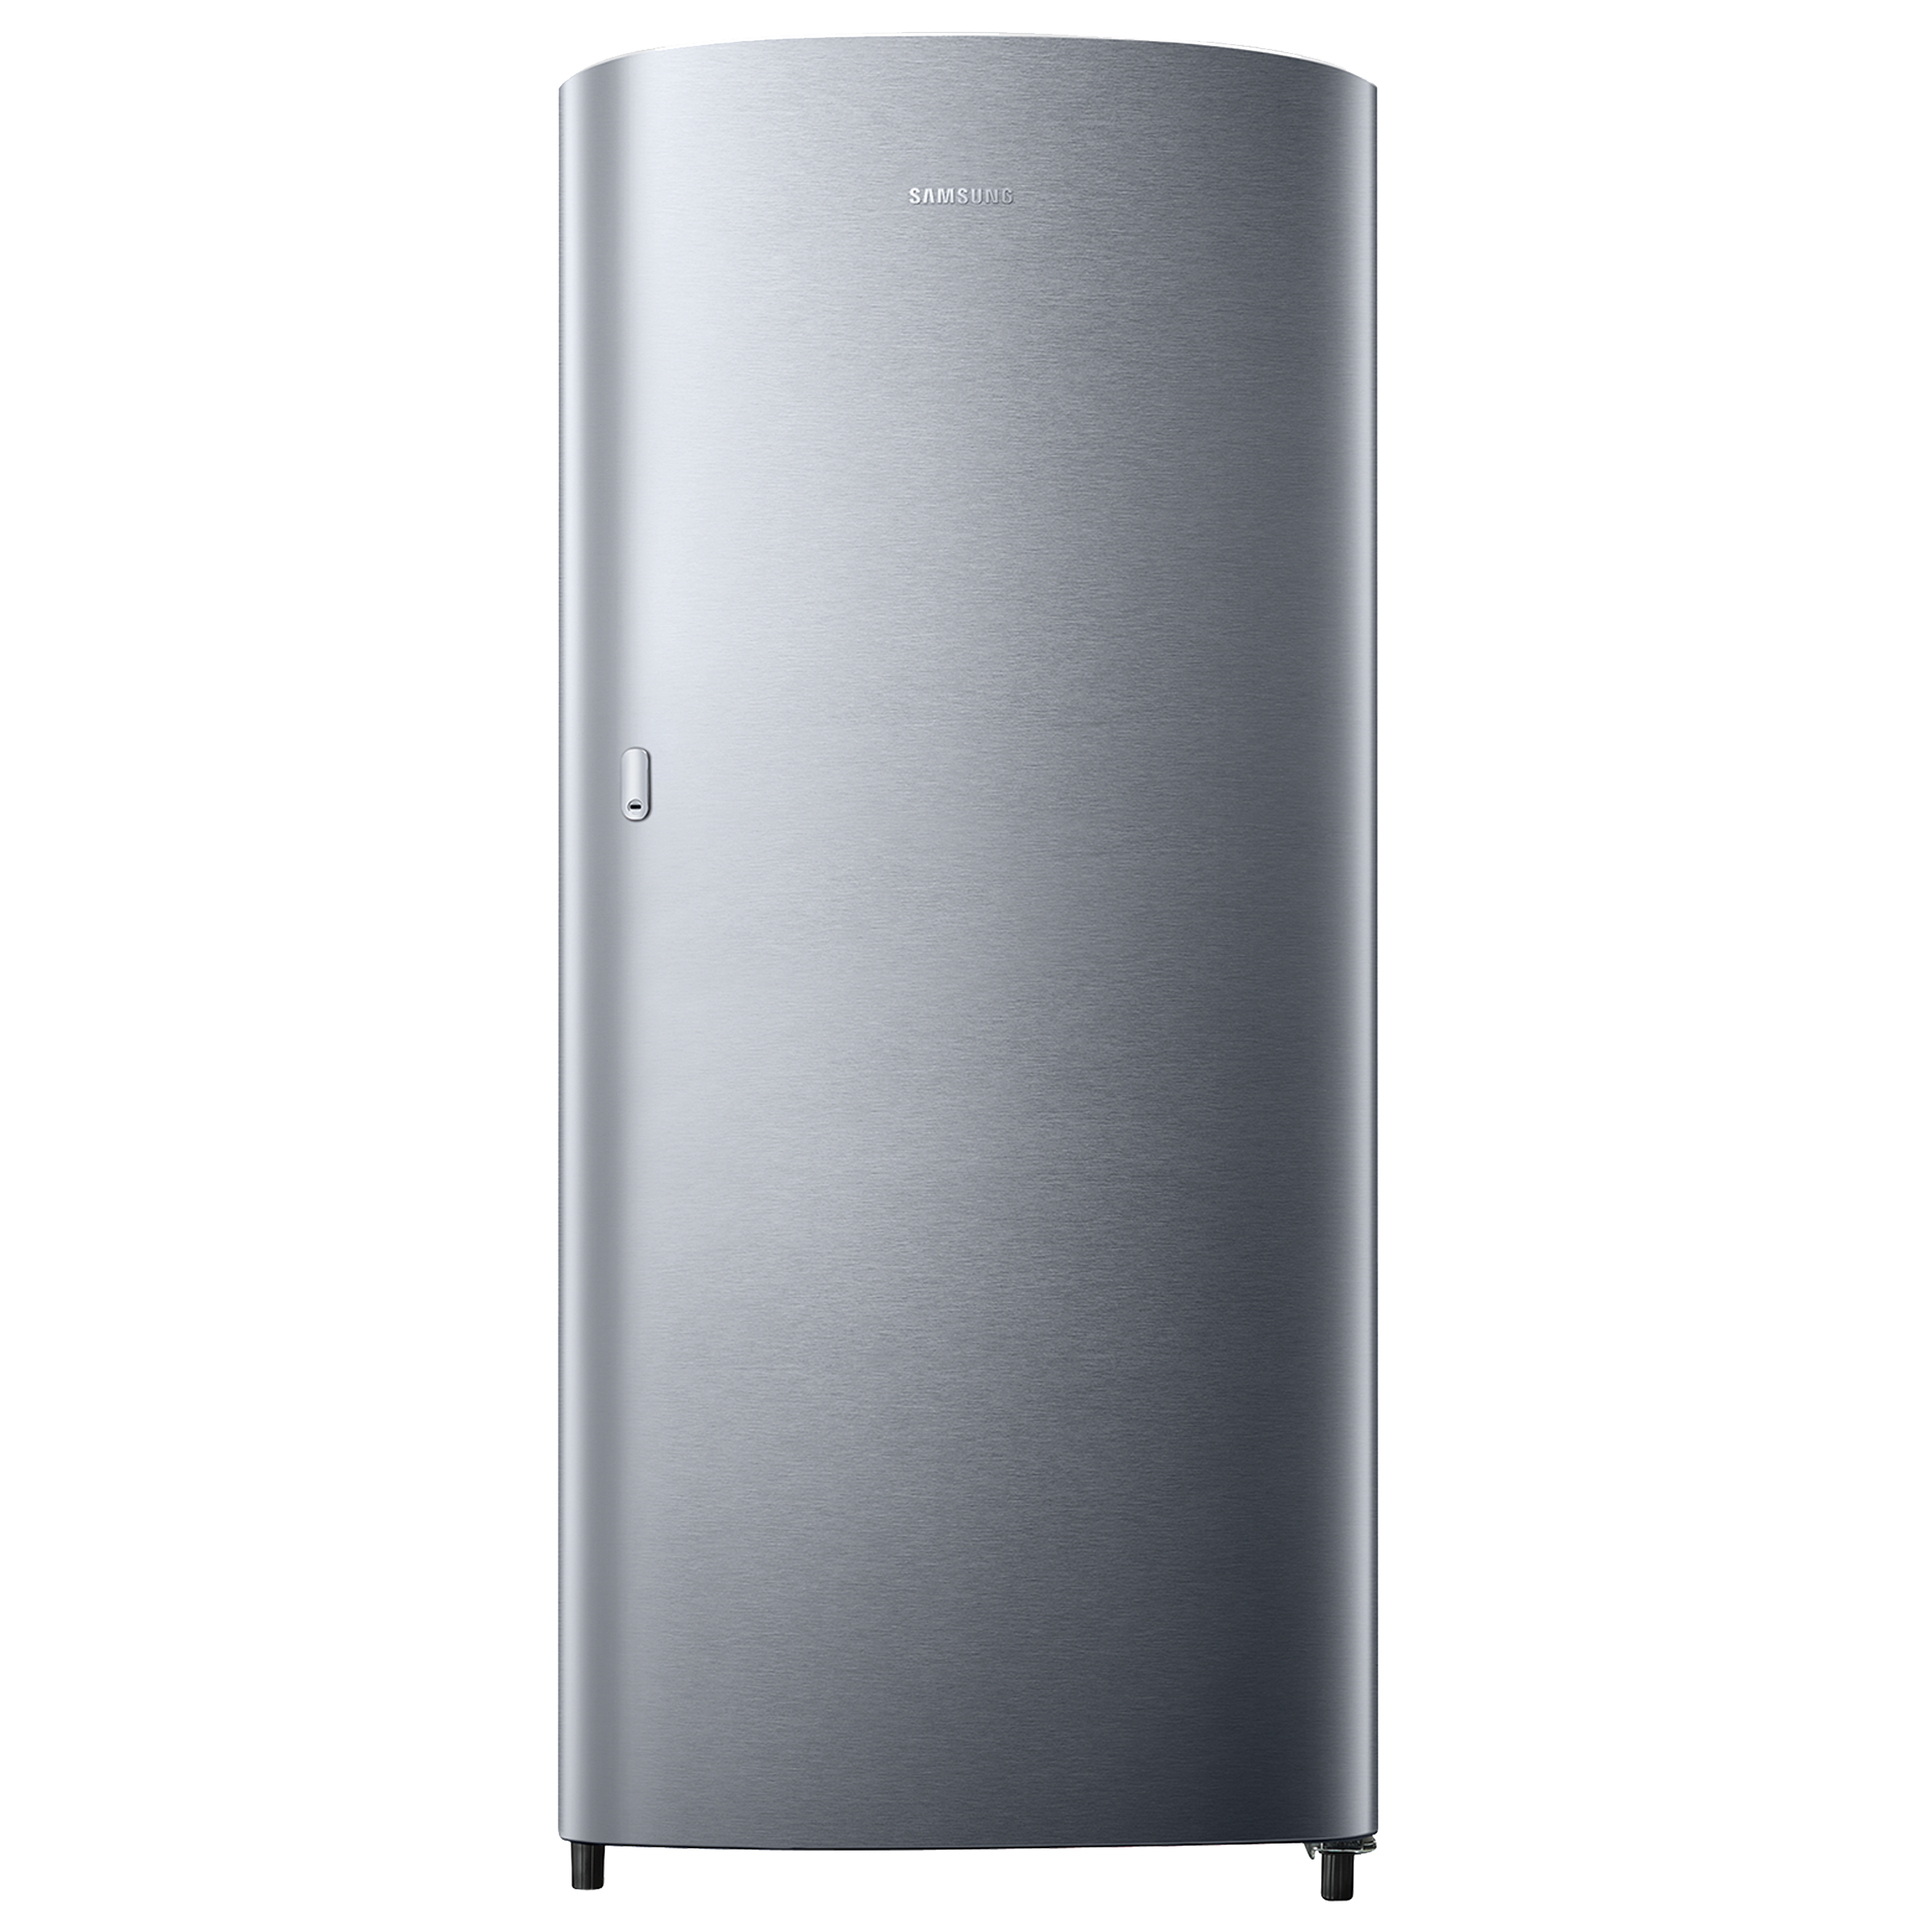 Samsung 192 Litres 2 Star Direct Cool Single Door Refrigerator (Stabilizer Free Operation, RR19T11CBSE/HL, Elective Silver)_1